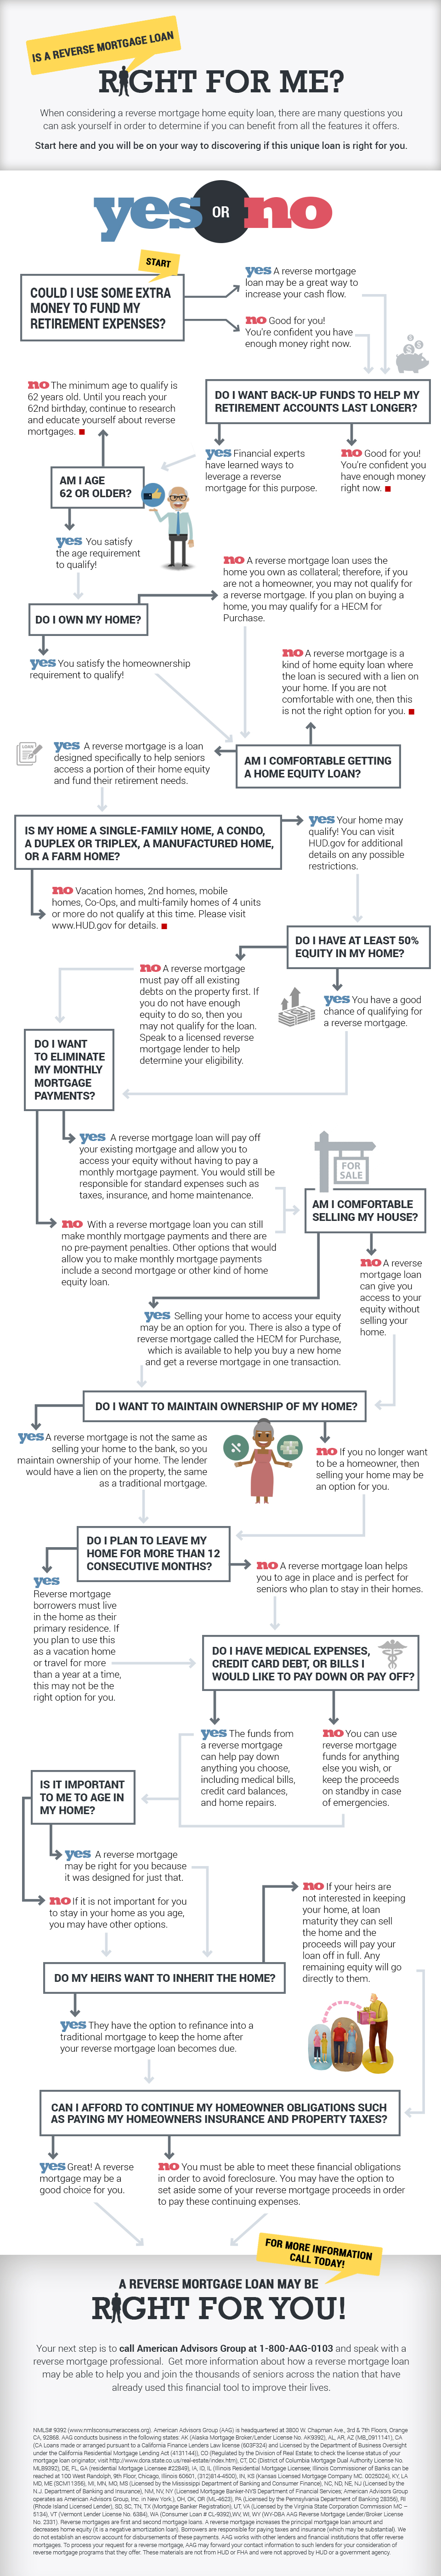 Is a Reverse Mortgage Right For Me Infographic